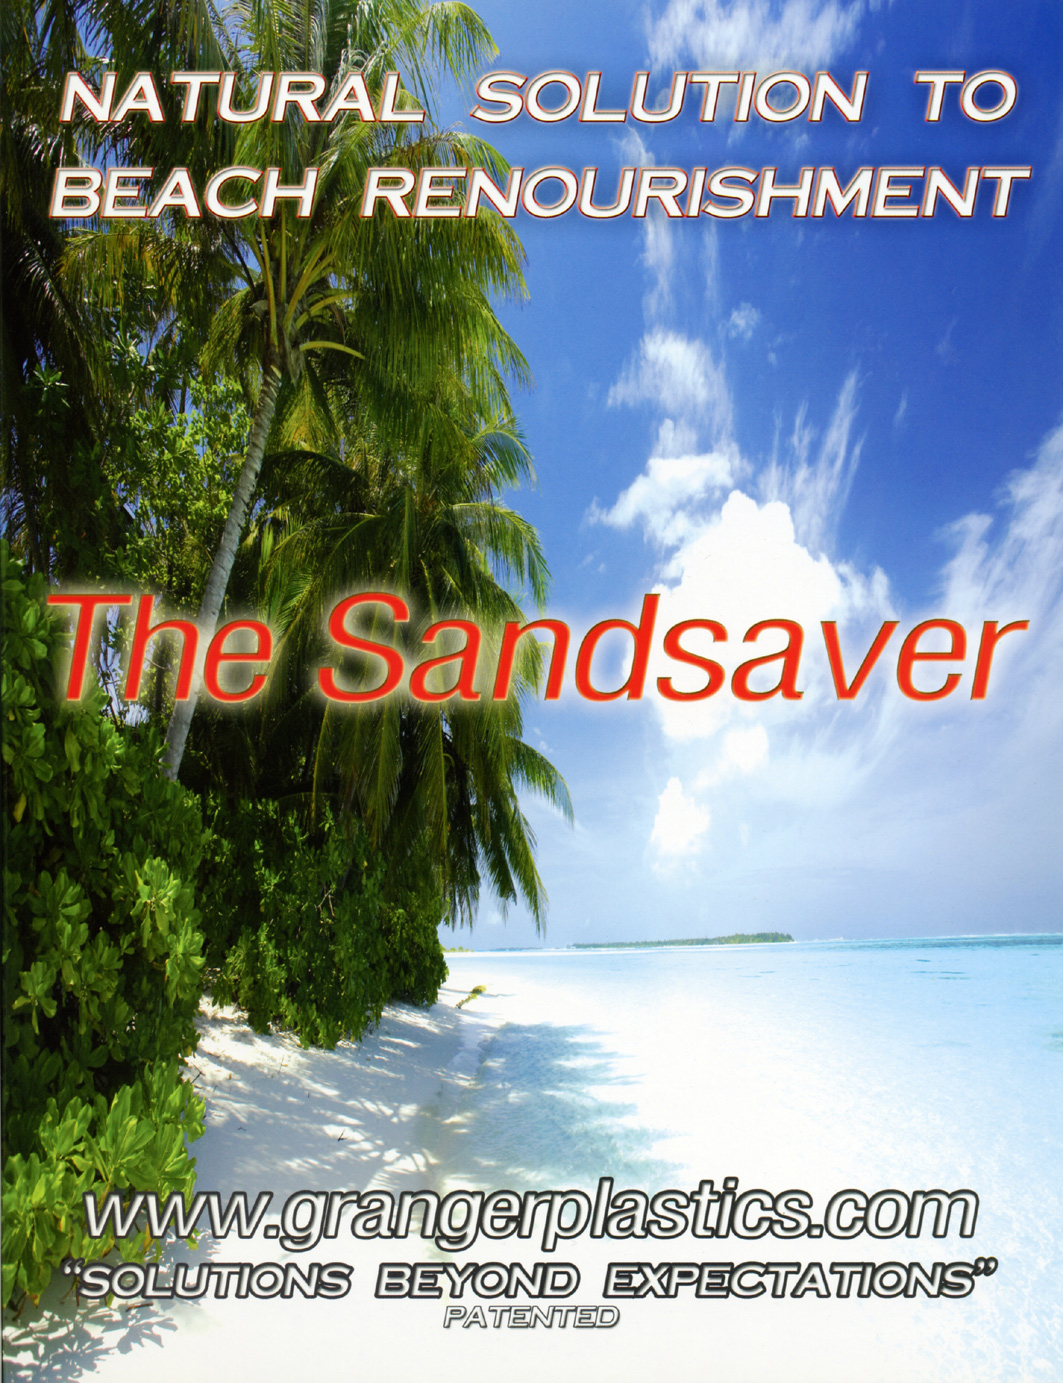 Sandsaver Beach Erosion Solution Information, Beach Dredging Alternative